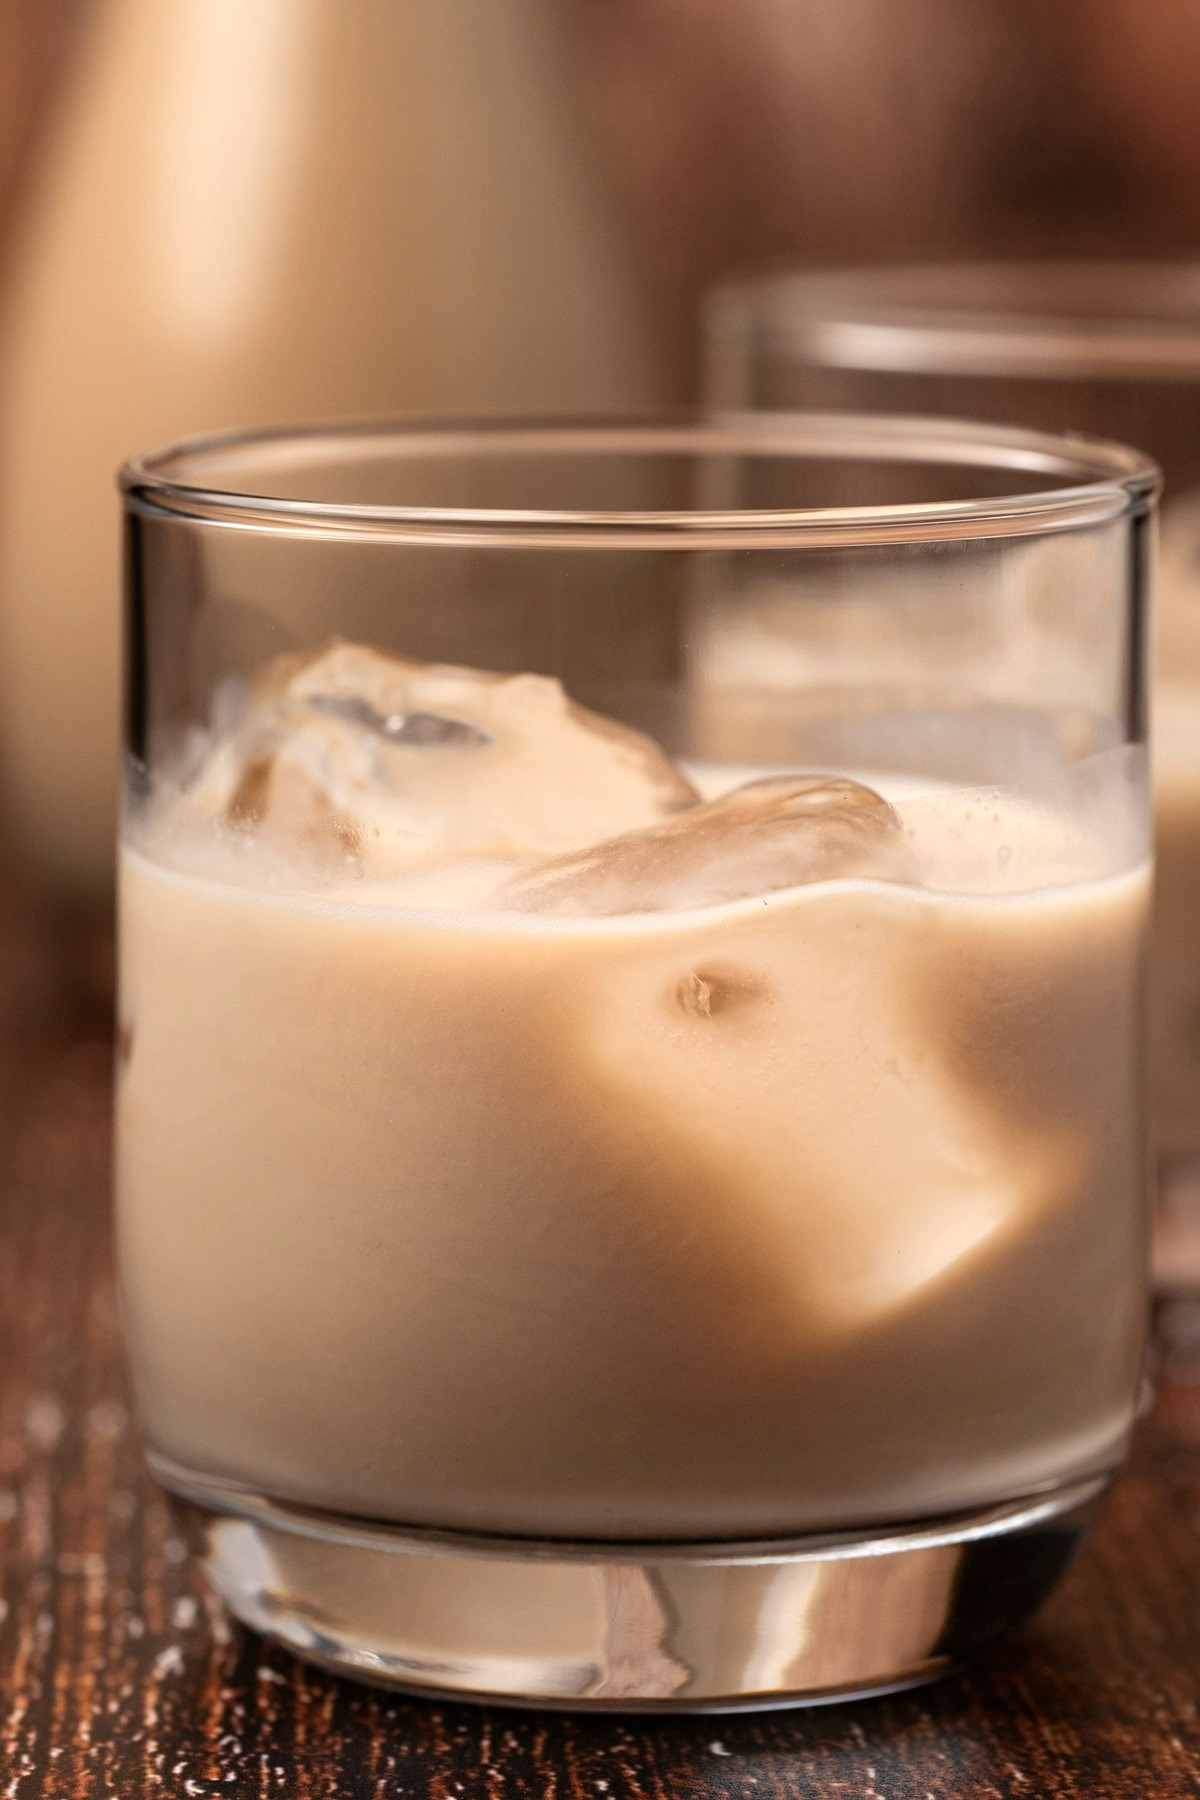 Homemade baileys with ice in a glass.